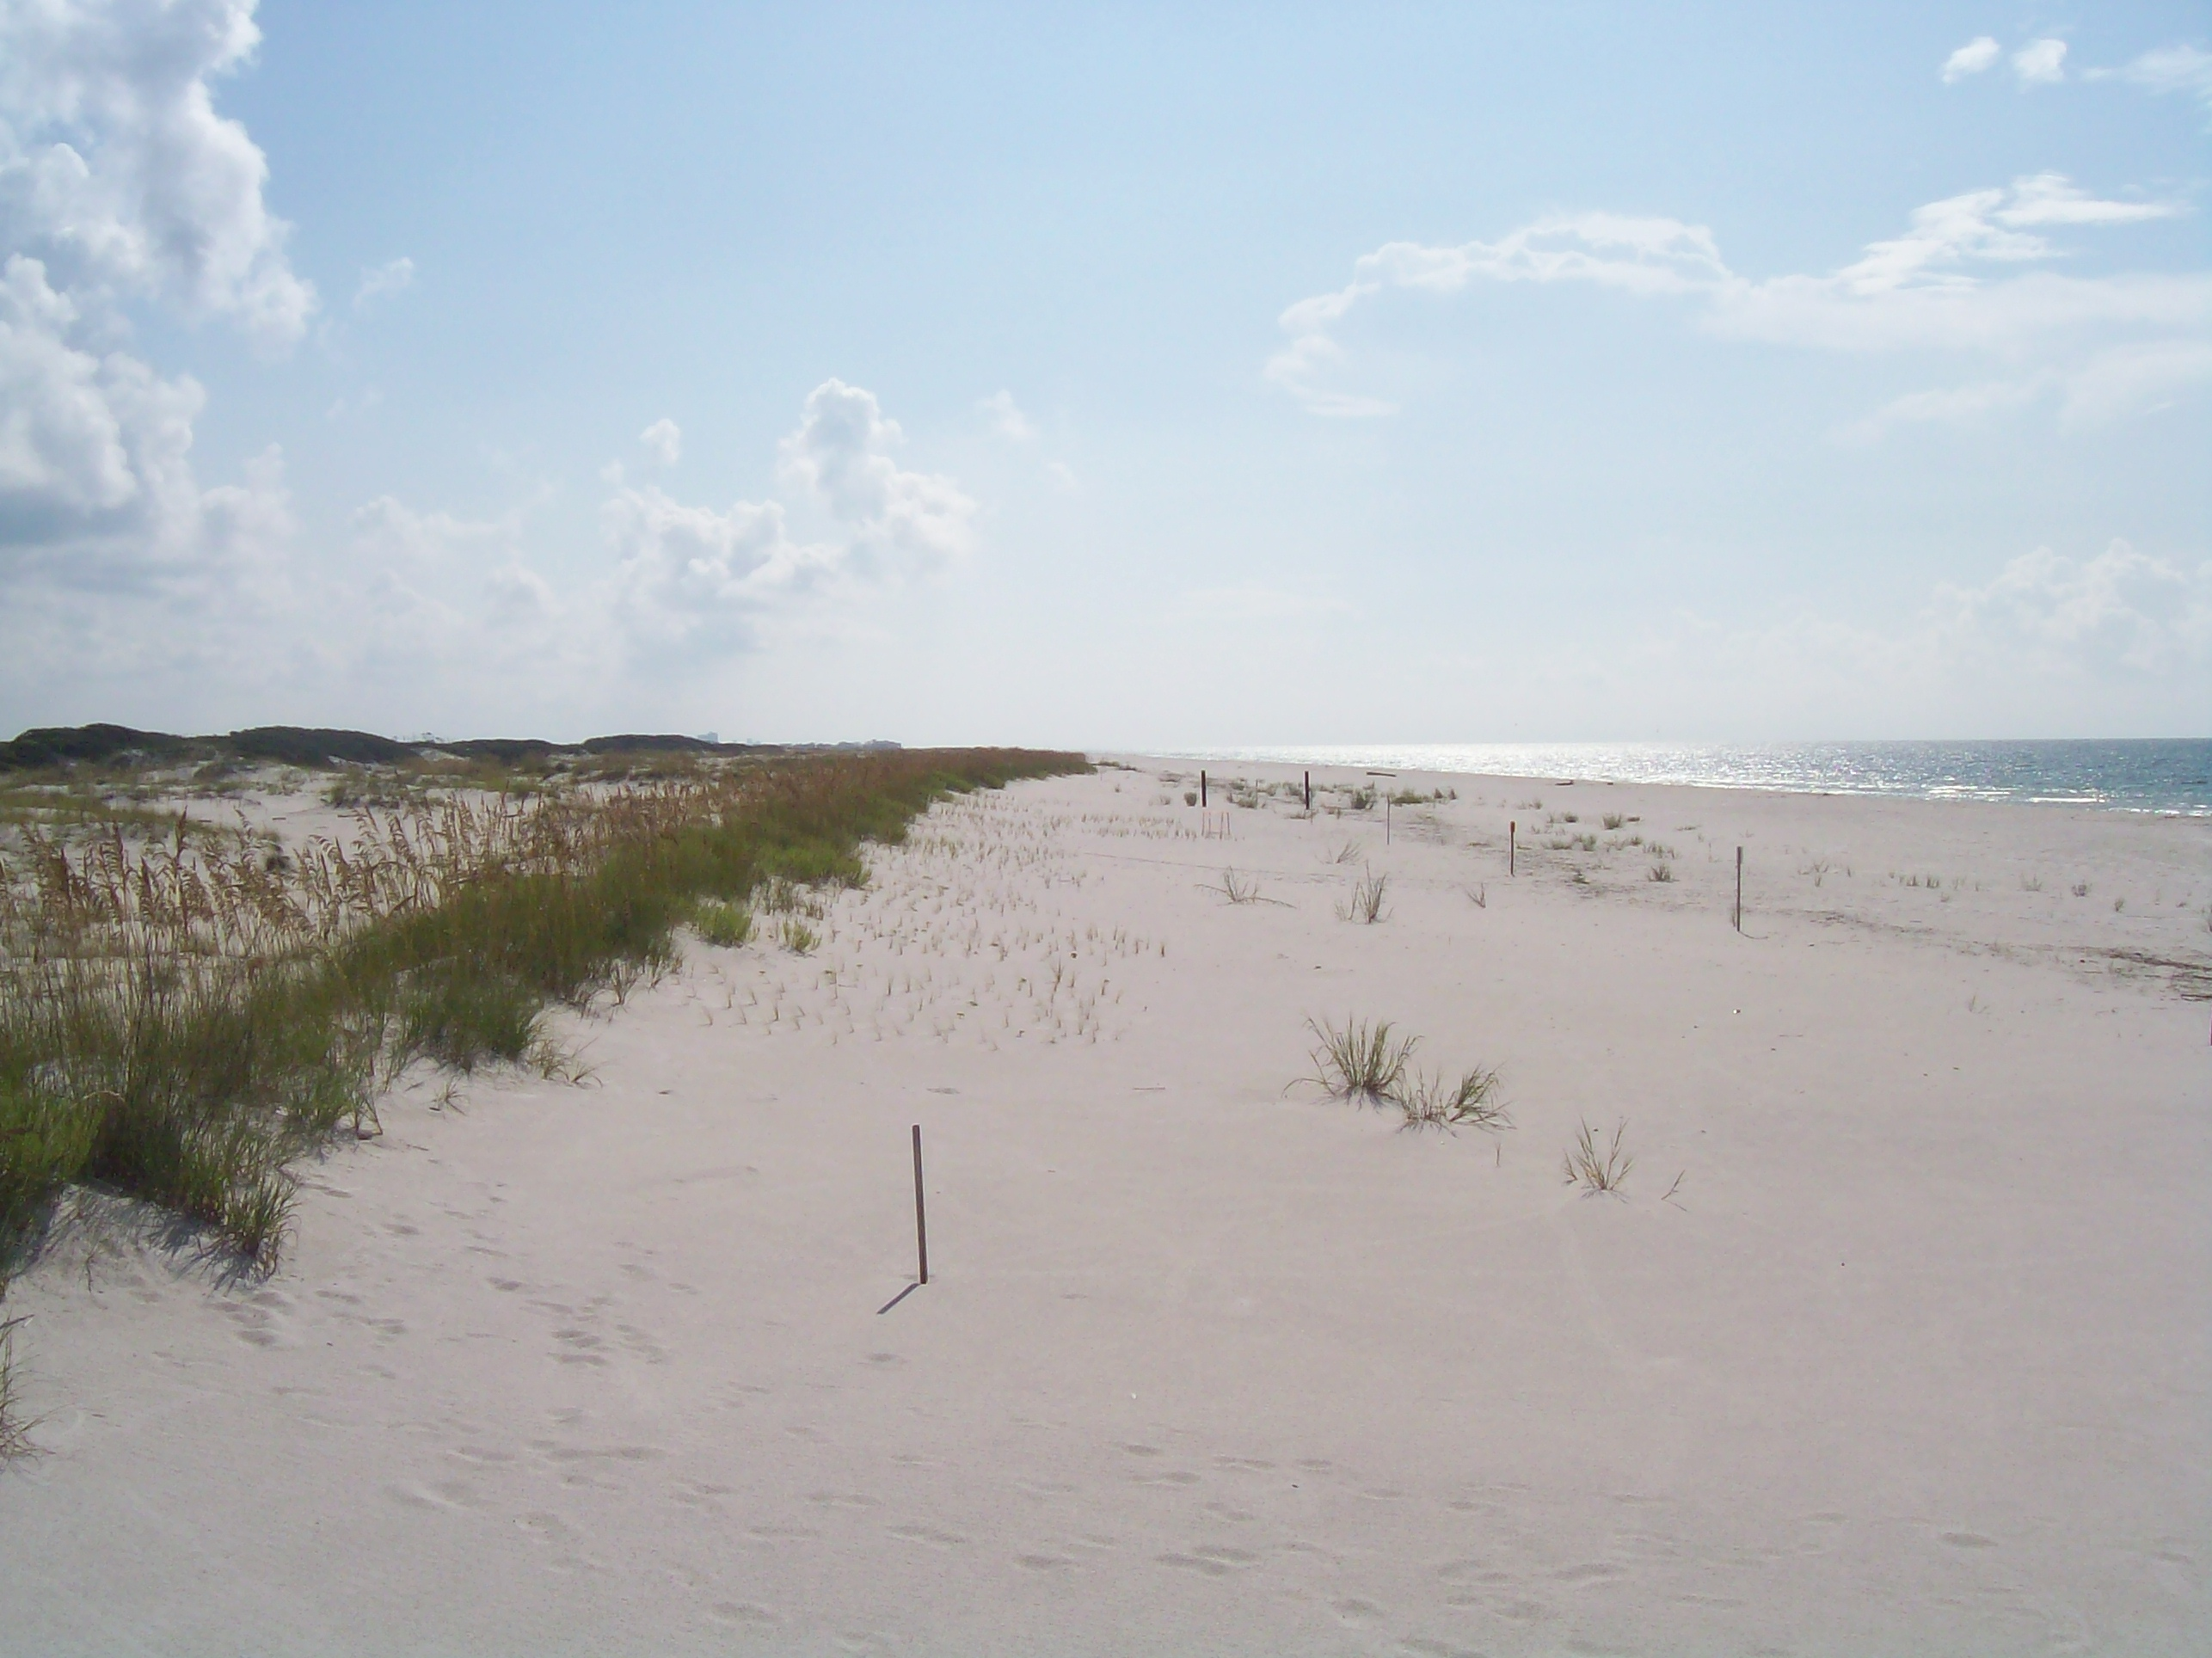 Bon Secoure National Wildlife Refuge at the Gulf of Mexico